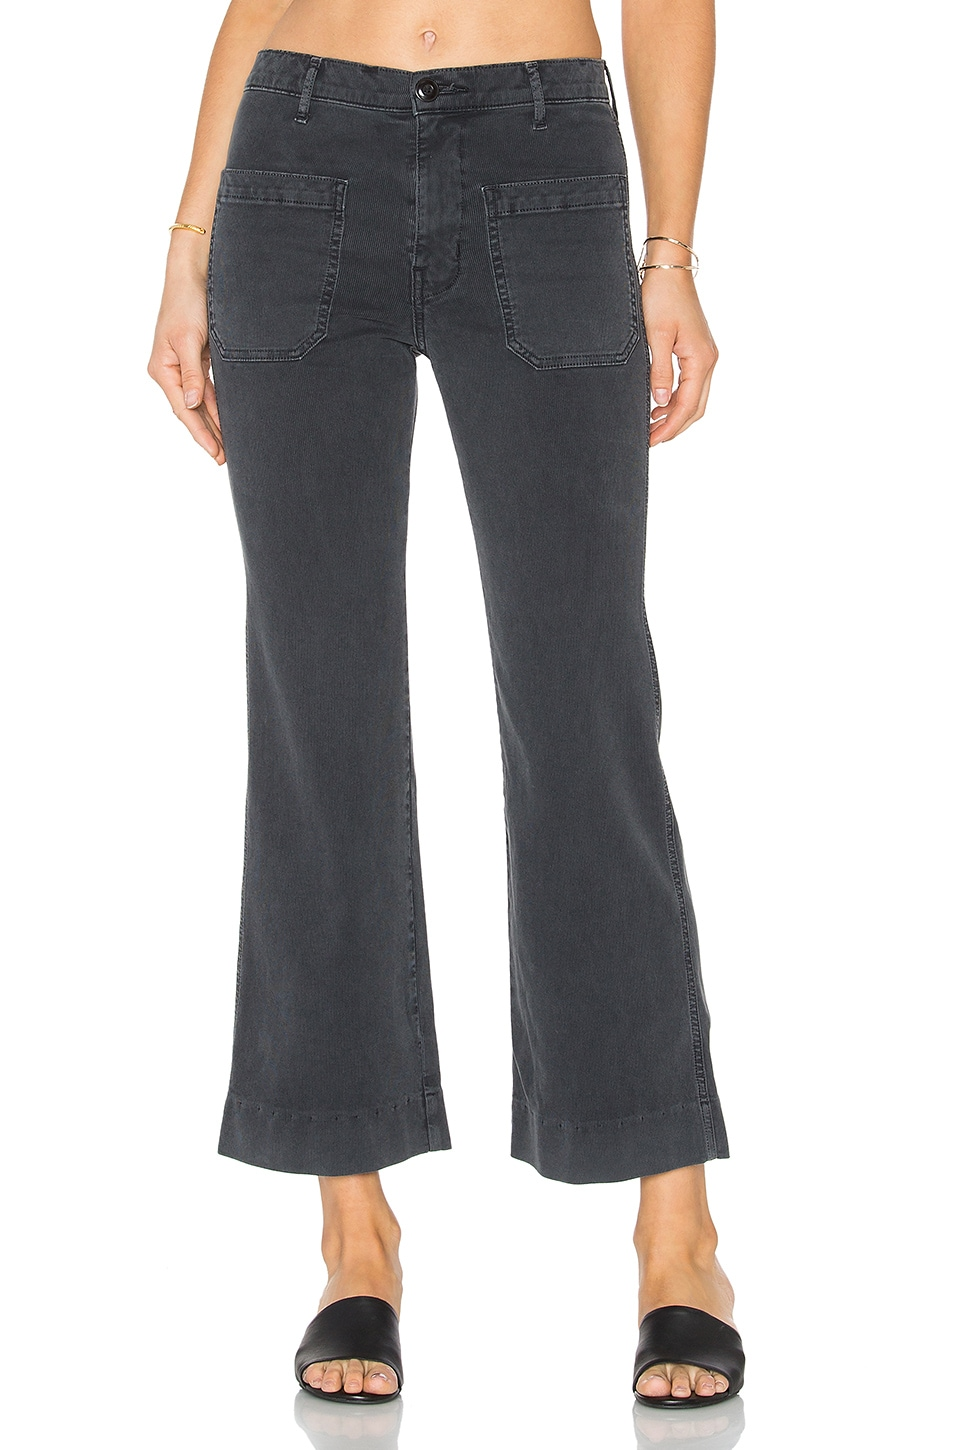 The Cropped Mariner Jean by The Great